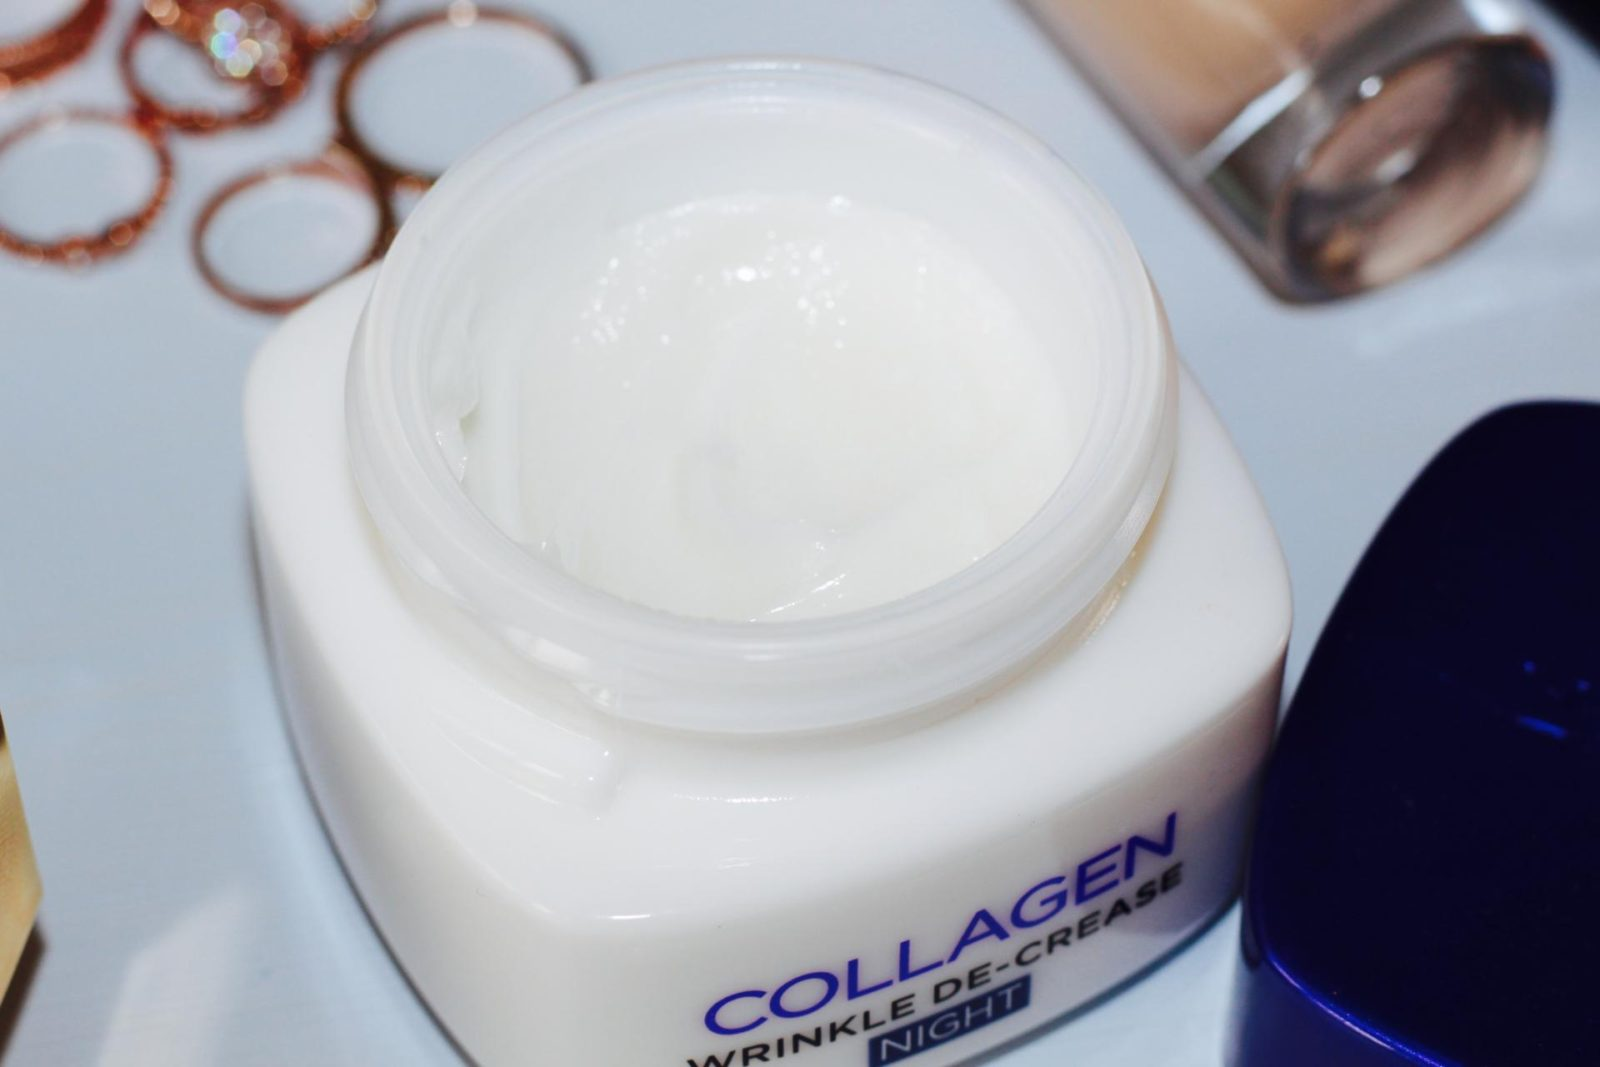 L'Oreal Collagen Wrinkle De-Crease